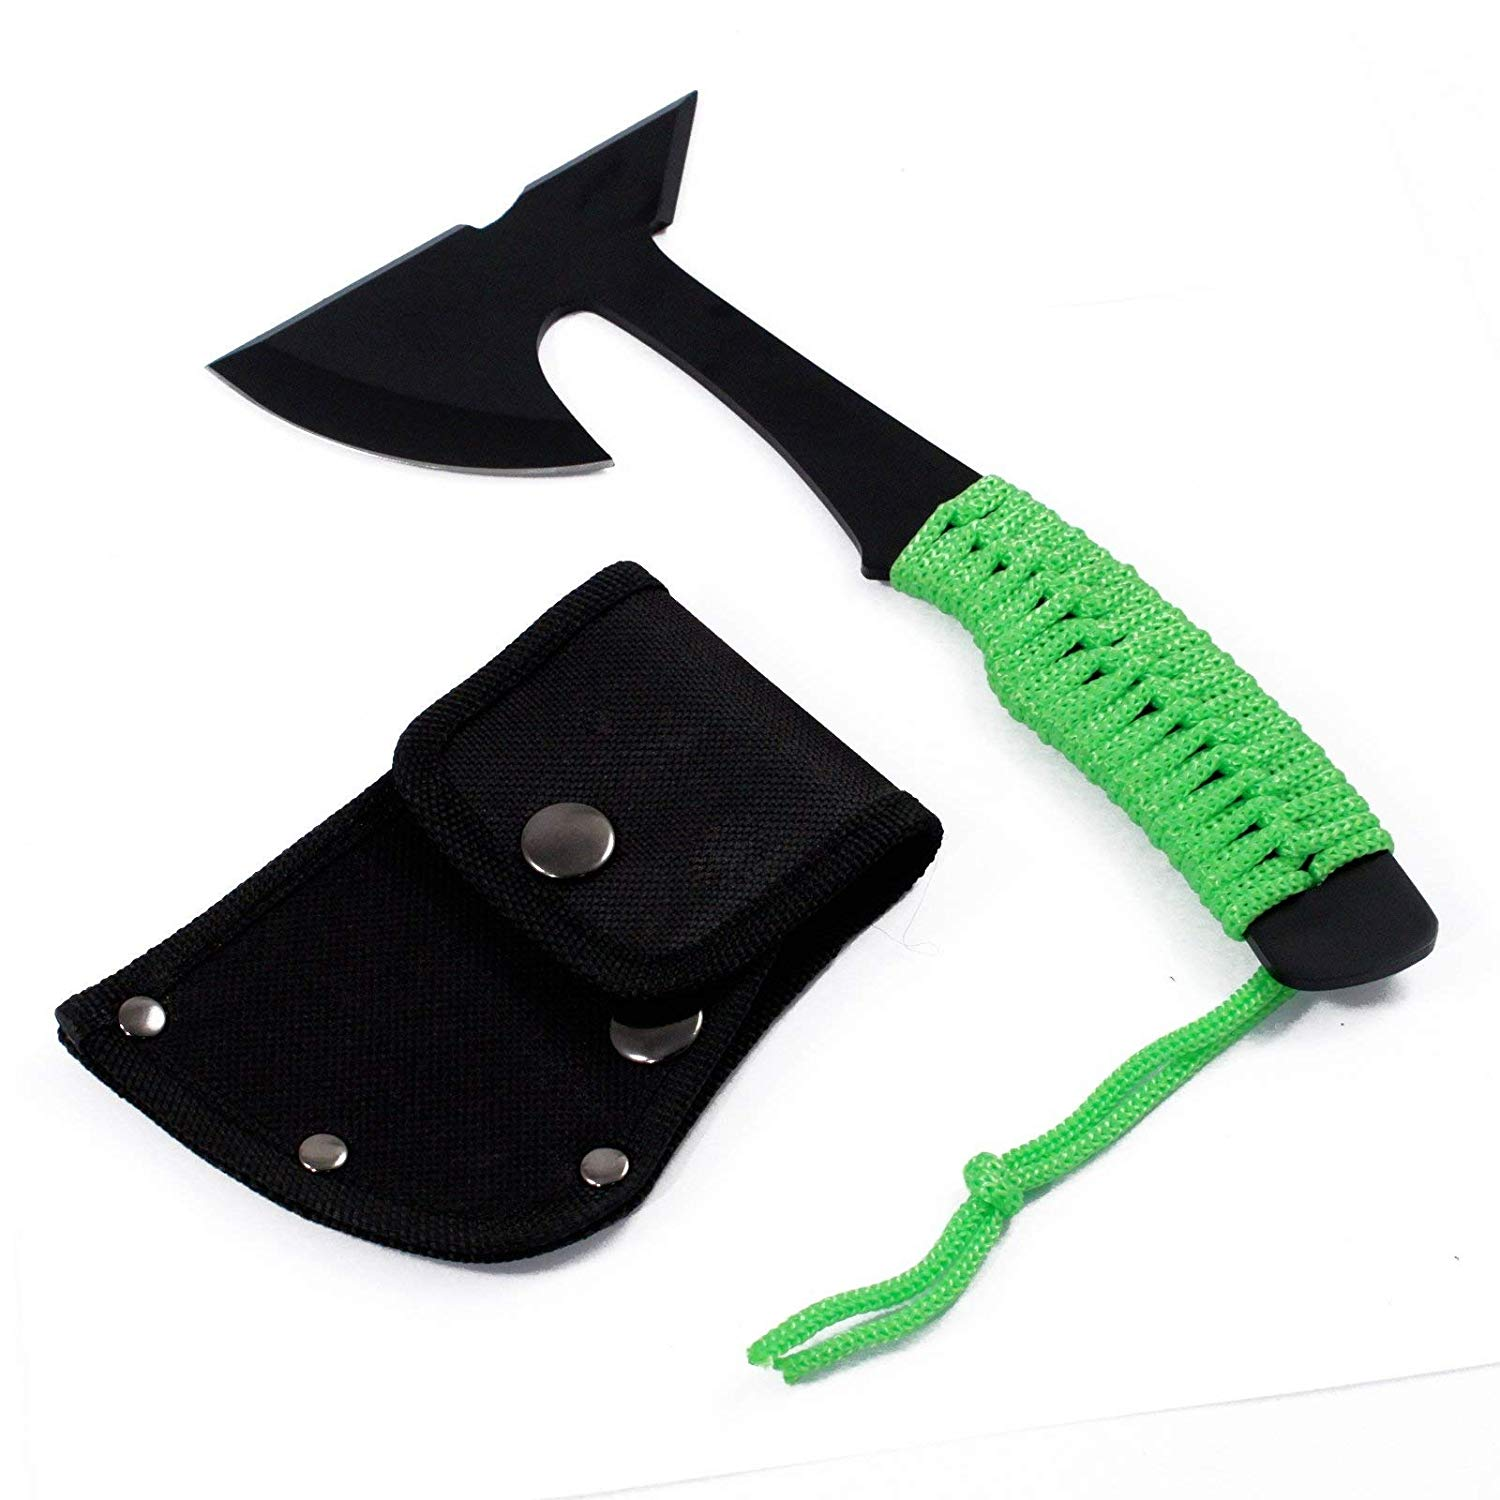 Ultra Lightweight Outdoor Micro Axe Hatchet Green Paracord Wrapped Handle, Lightweight and Durable Design By... by